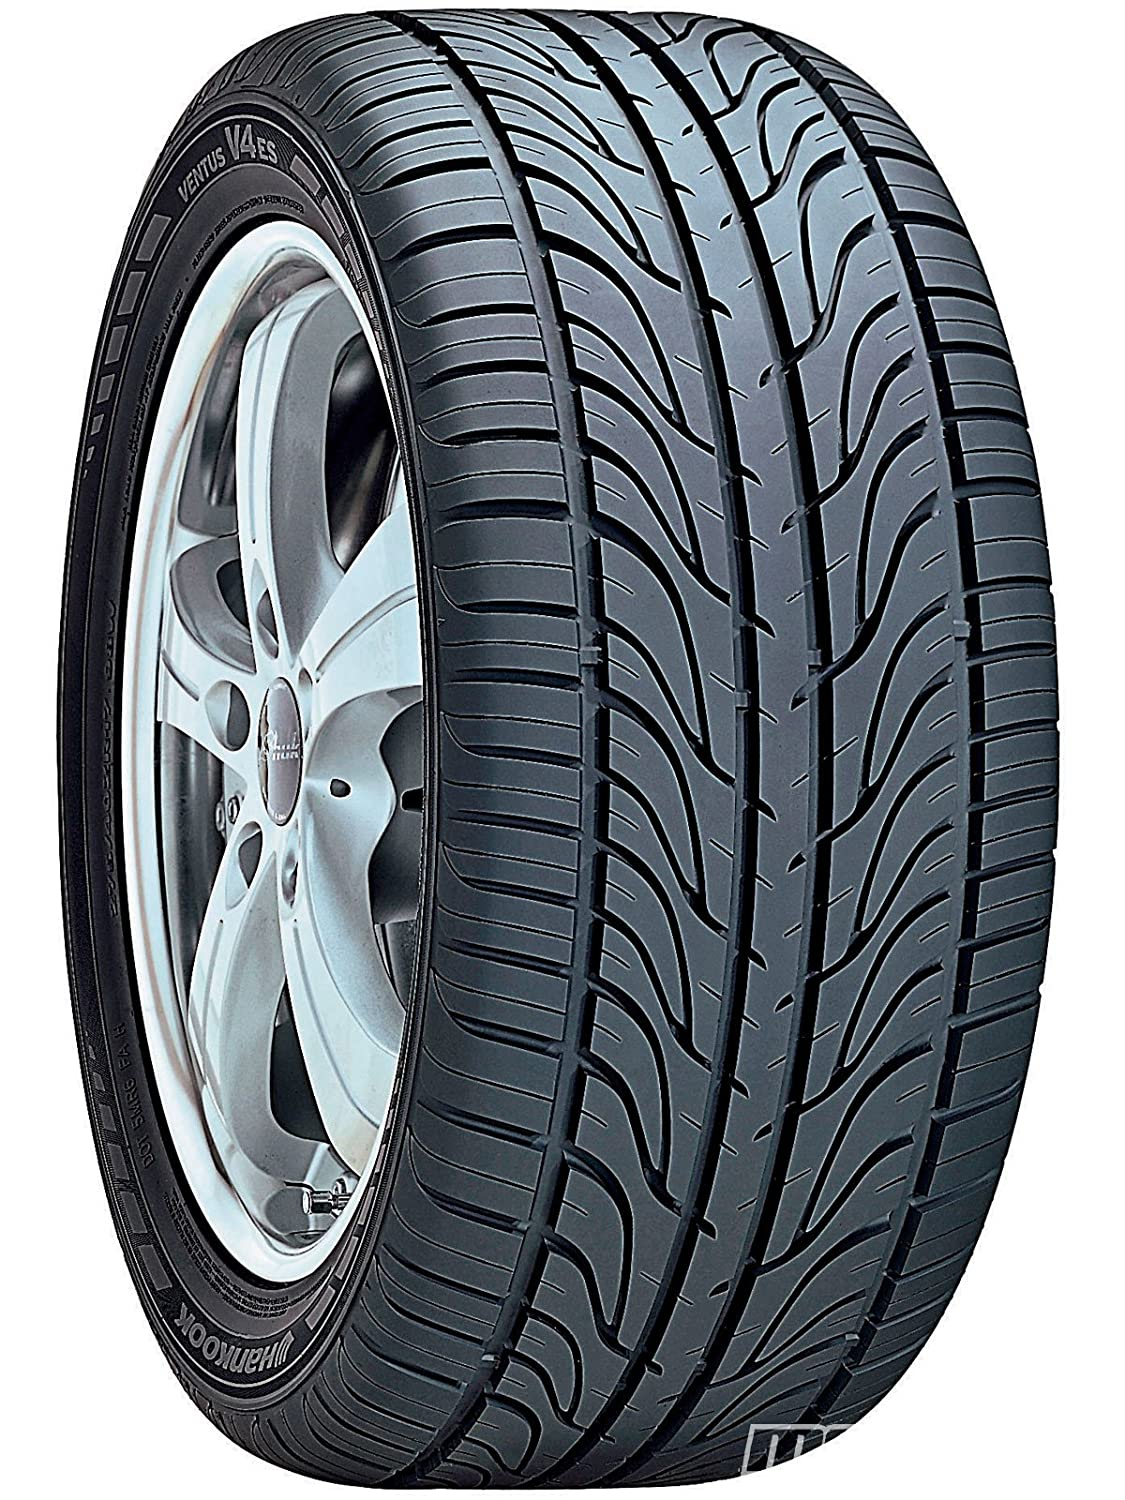 Hankook Vantra LT RA18  - 205/65/R16 107T - E/C/70 - Summer Tire (Light Truck)